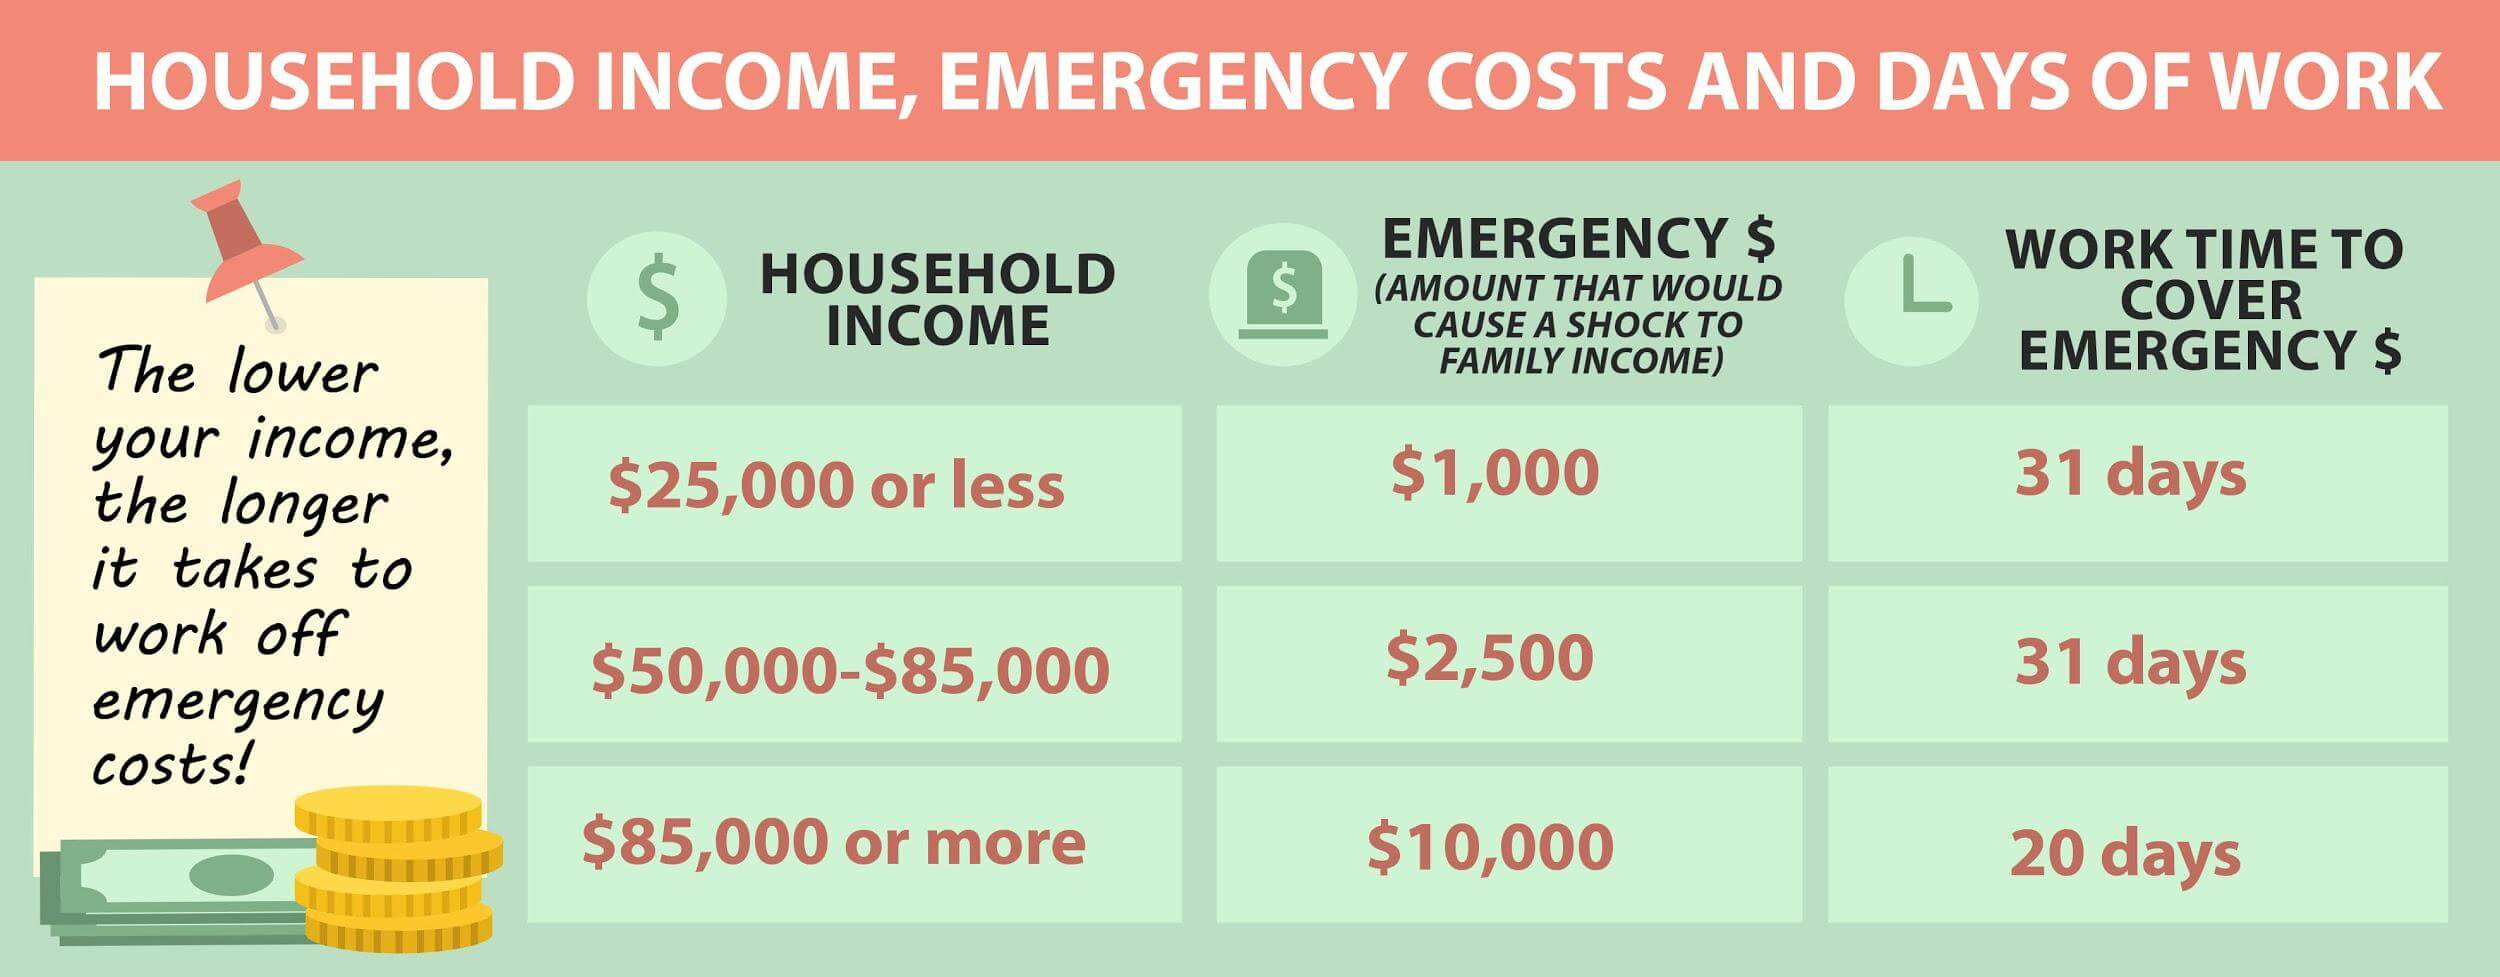 emergency costs vs days of work